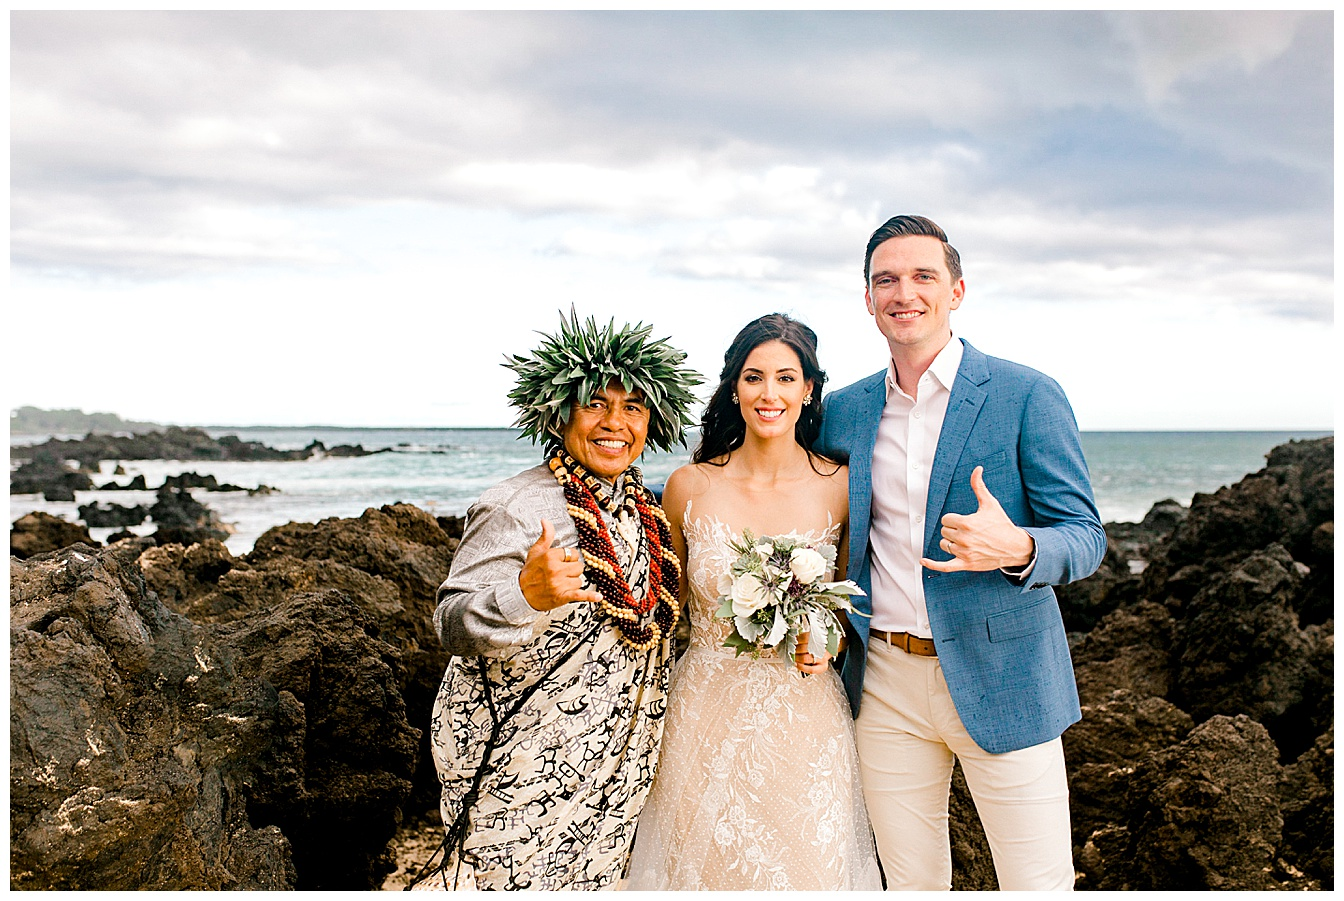 Bride, groom, and officiant giving the shaka following a Maui elopement ceremony